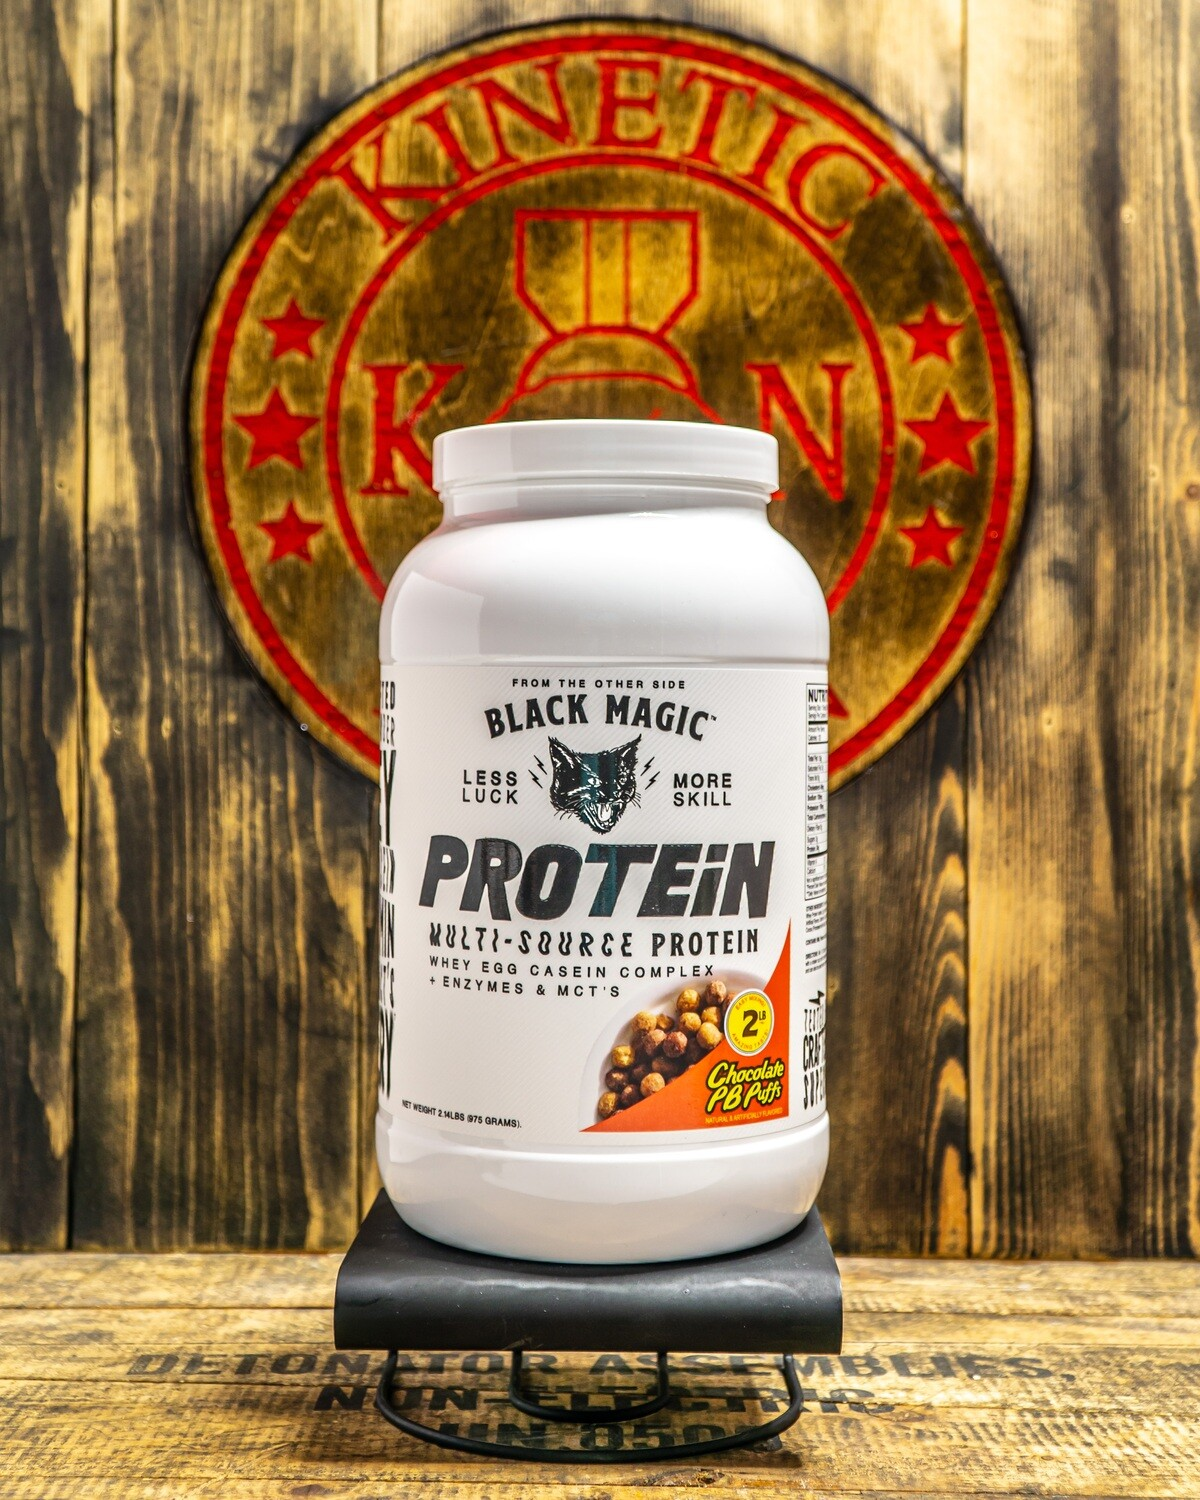 Black Magic, Multi-Source Protein, 25 Servings, 2Lb, Chocolate Pb Puffs